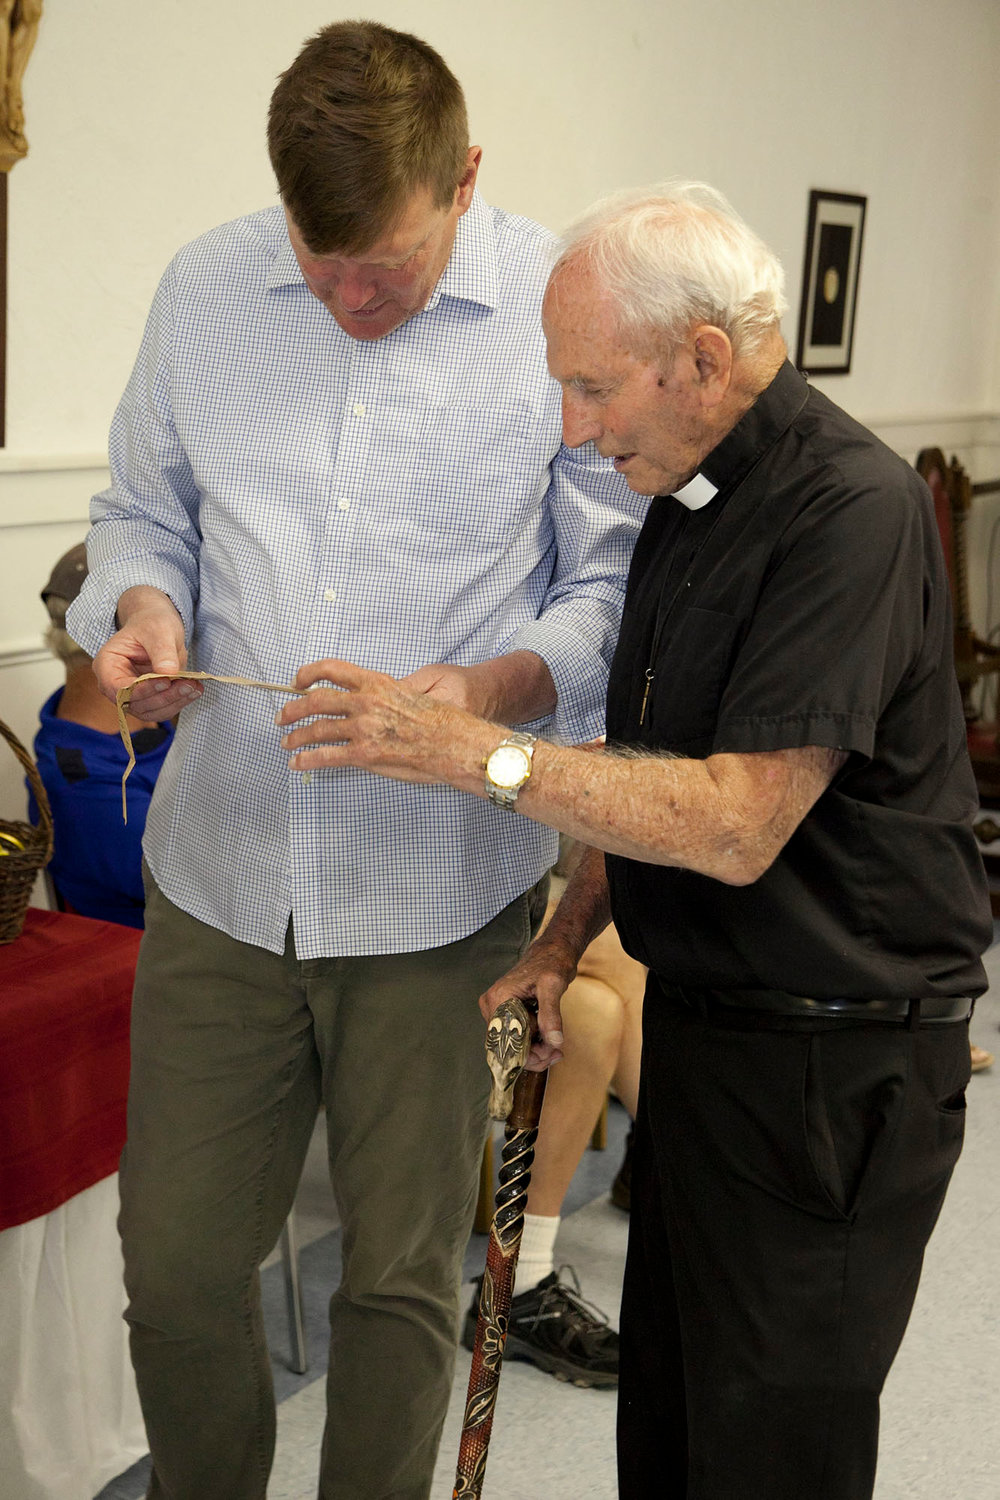 The 94-year-old priest will be retiring at the end of July. On June 9, Father Grohe greeted many old friends at an open house at Sacred Heart. Above, he and Matthew Loughlin peruse a newspaper clipping about his arrival in Esopus in 1969.